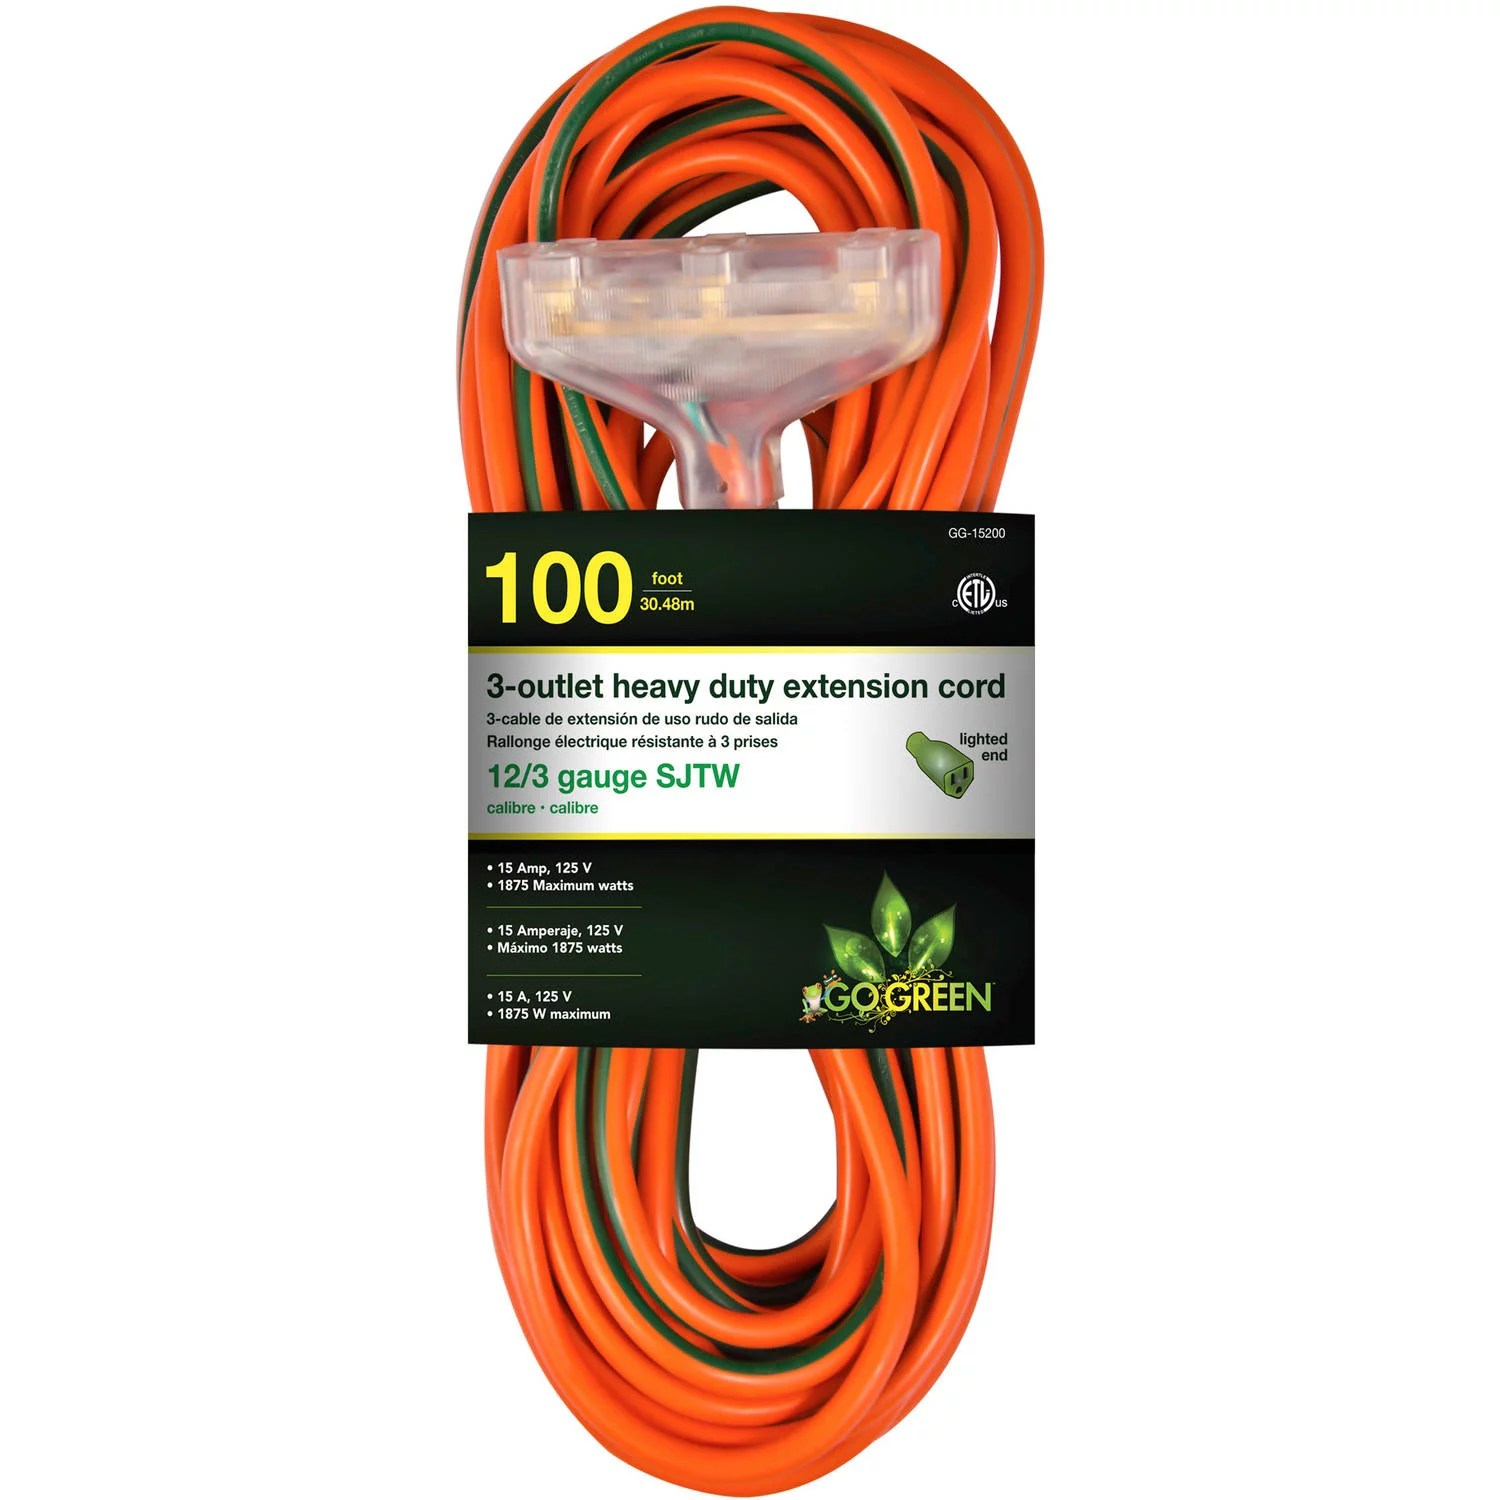 Garage Heater Extension Cord Gogreen Power 12 3 100 15200 3 Outlet Heavy Duty Extension Cord Lighted End